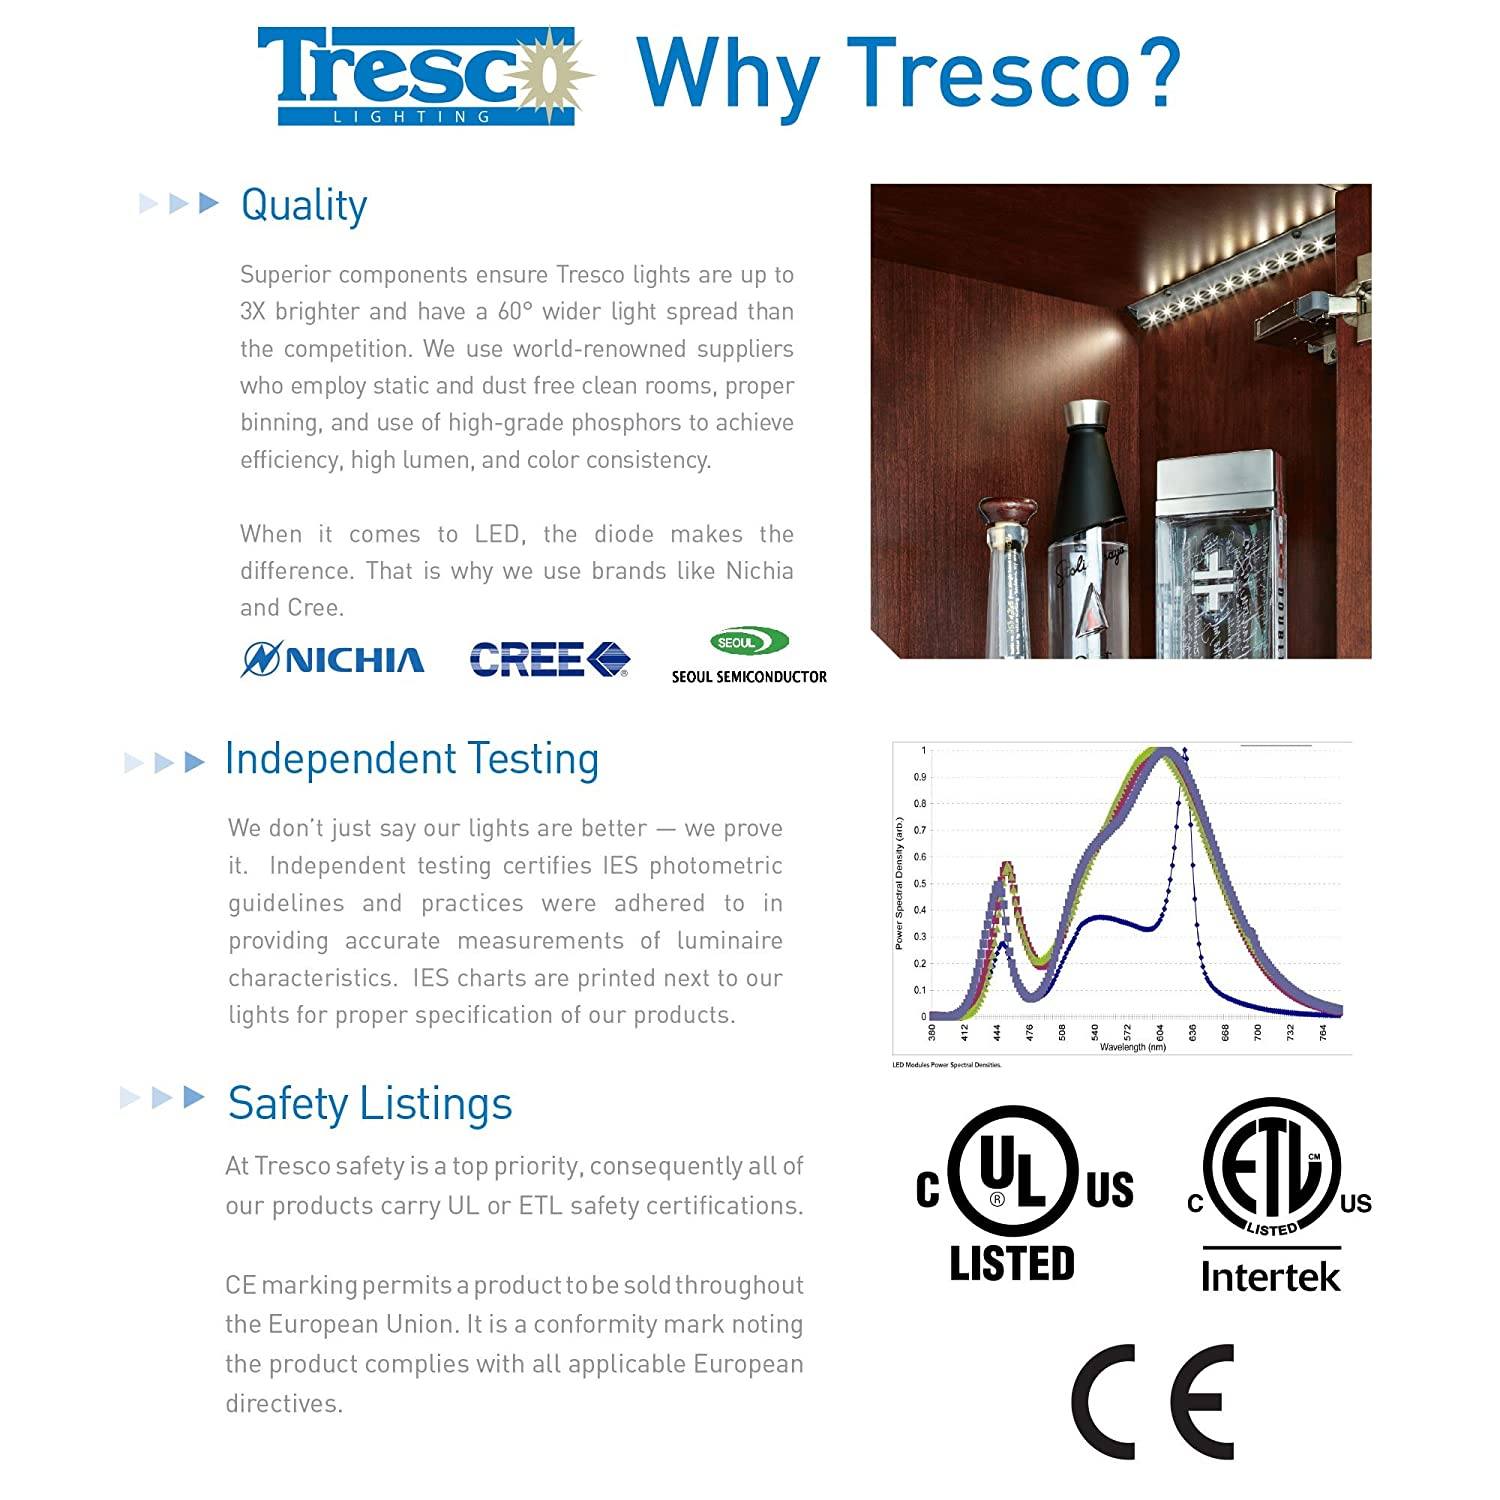 Tresco Lighting L Led Smp8 Wni 1 Simpled Linkable And Dimmable Jesco Wiring Diagrams Linear Fixture With Mounting Hardware Included 8 Warm White